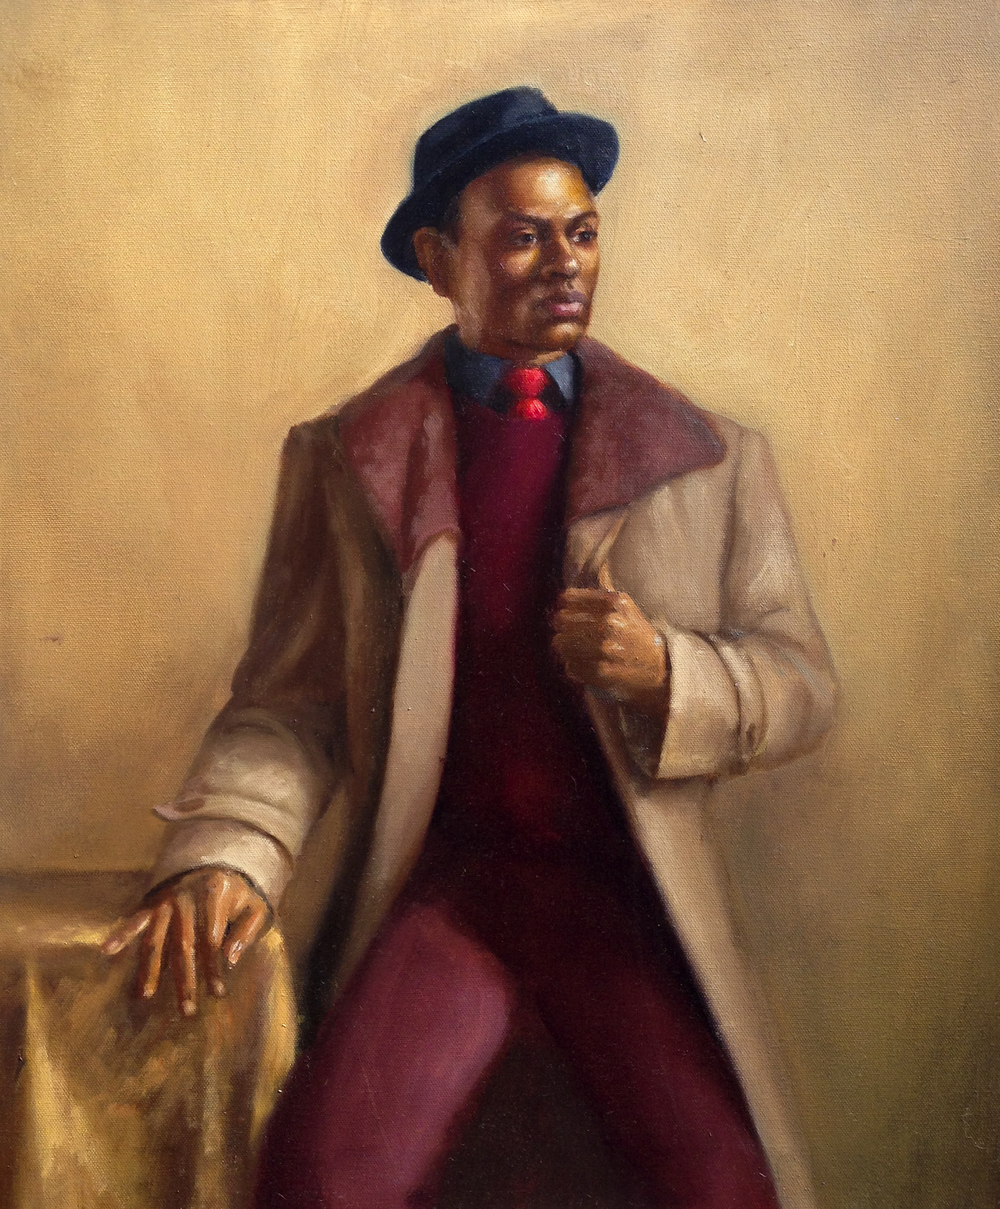 Man in the Coat 20x24 Oil on canvas